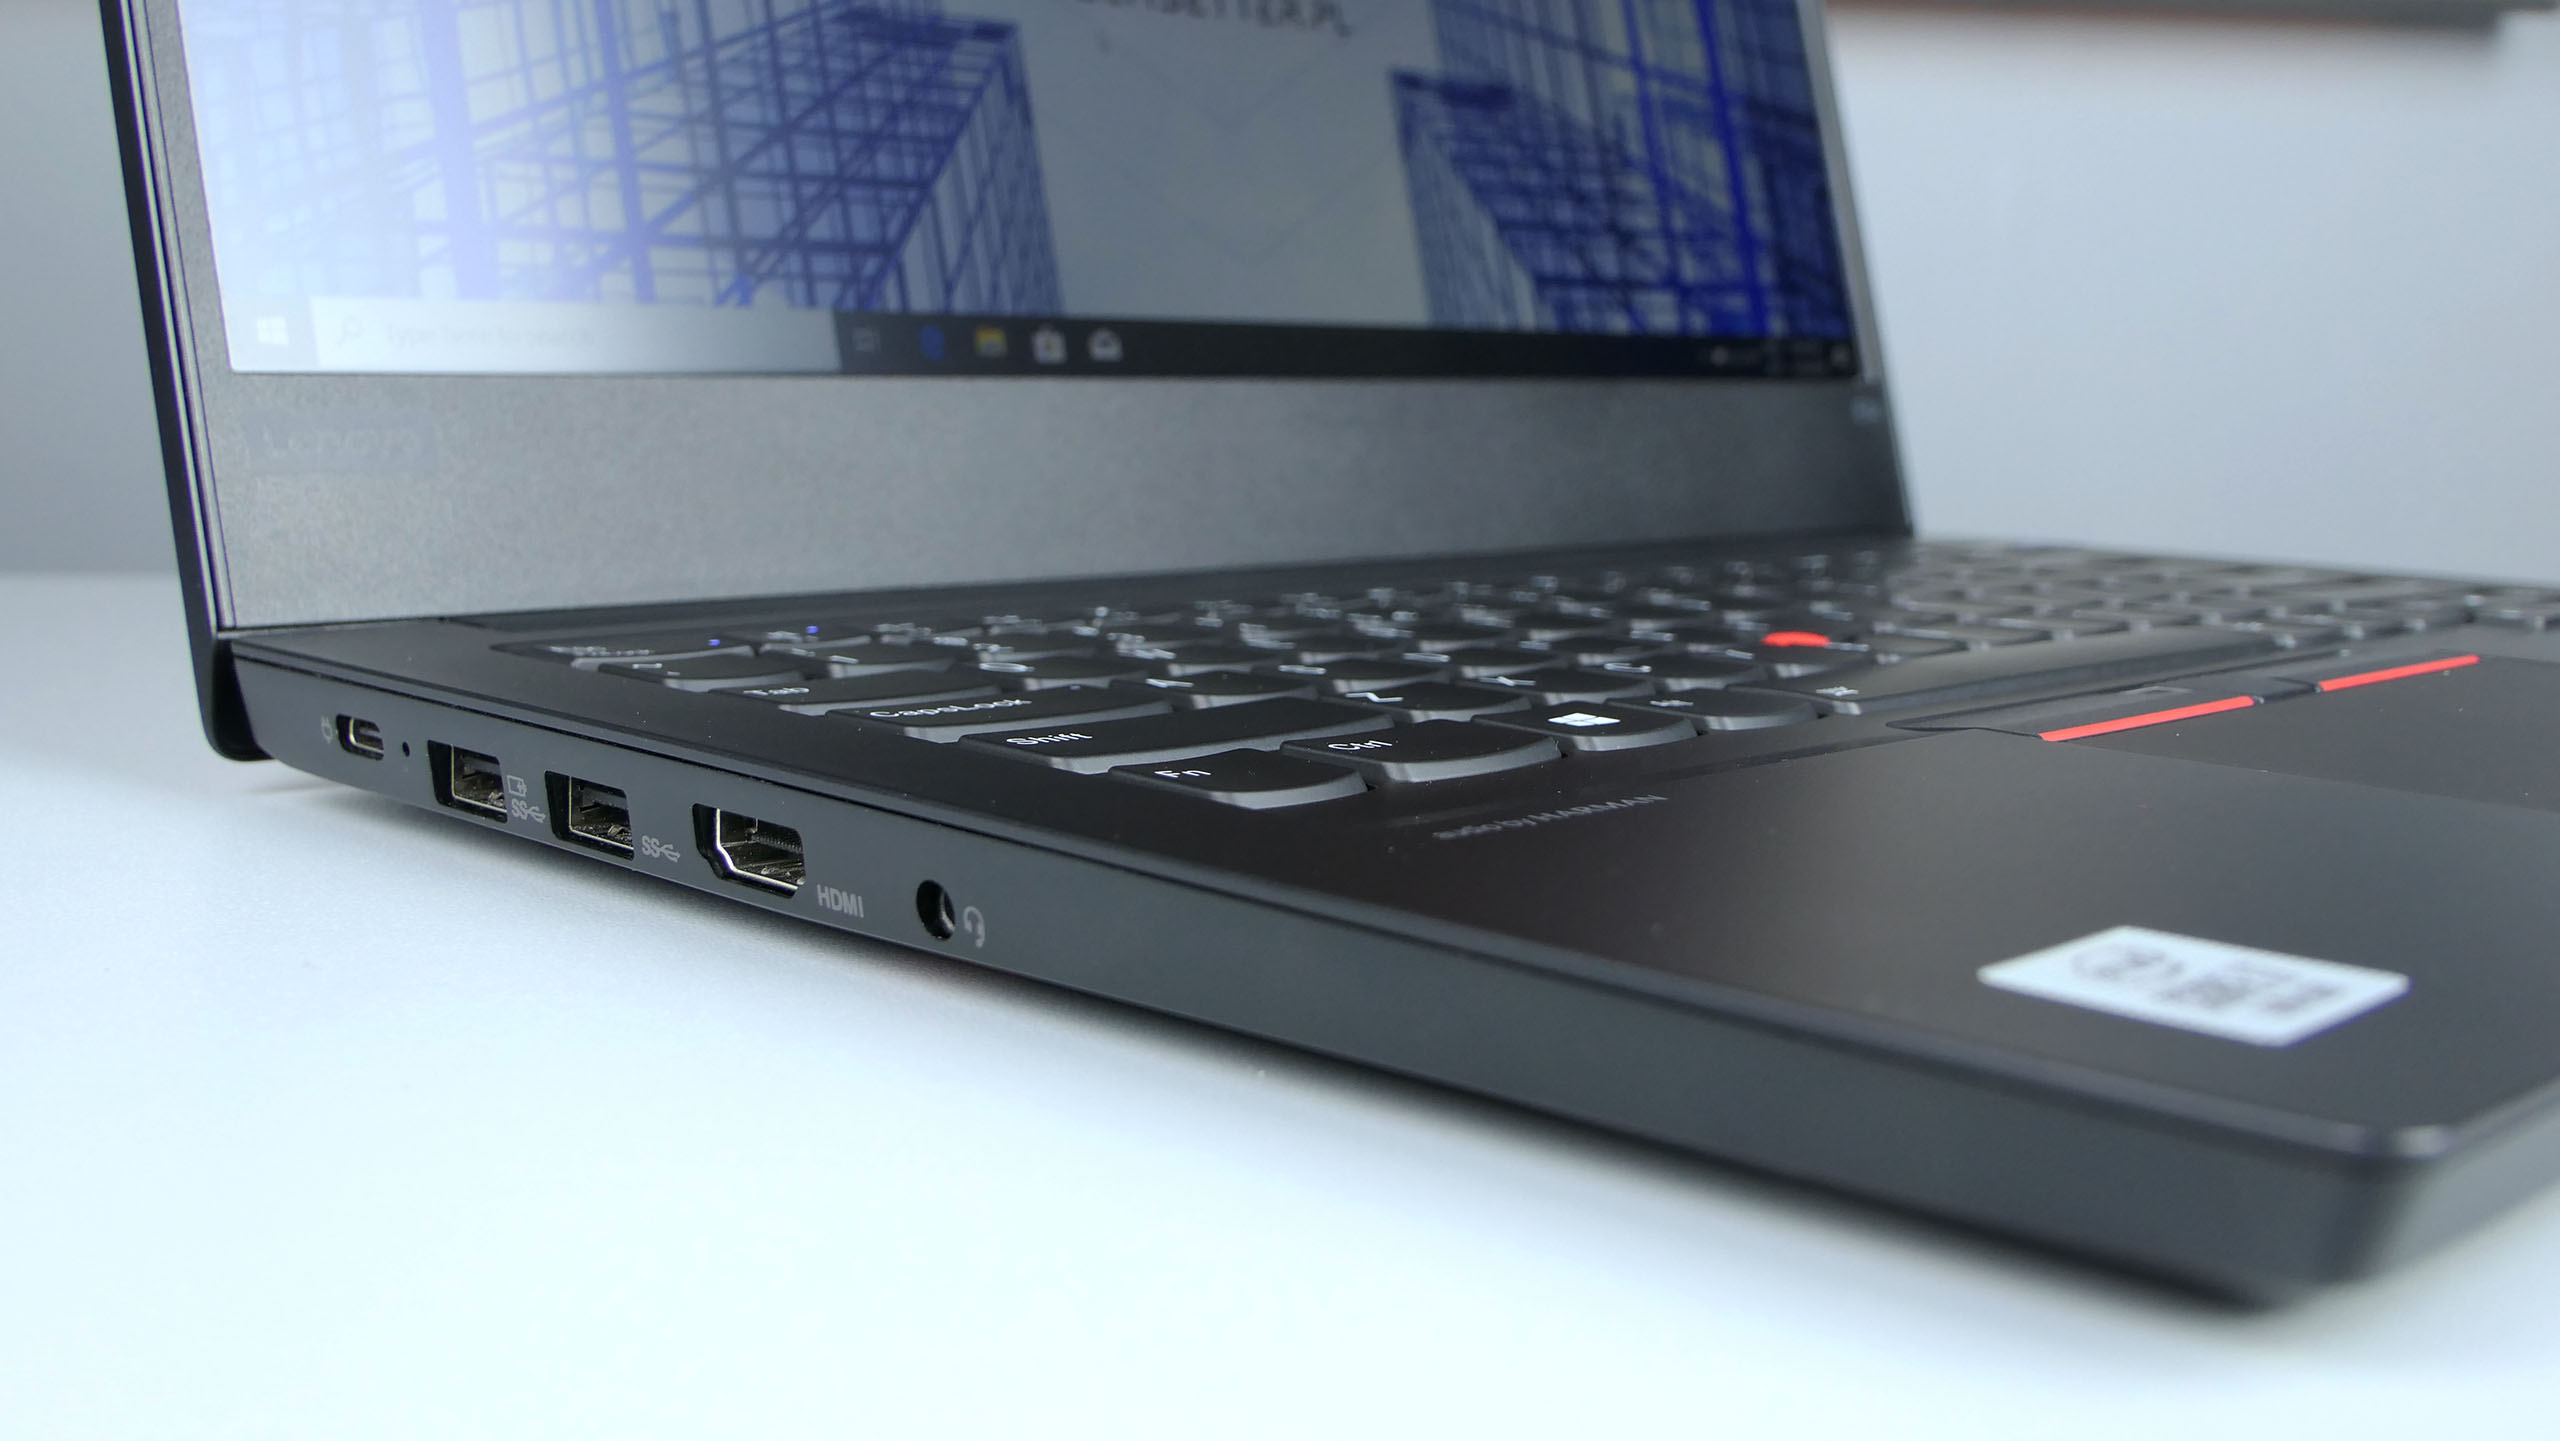 Lenovo ThinkPad E14 - porty z lewej strony: USB typu C, 2x USB 3.0, HDMI, audio in/out